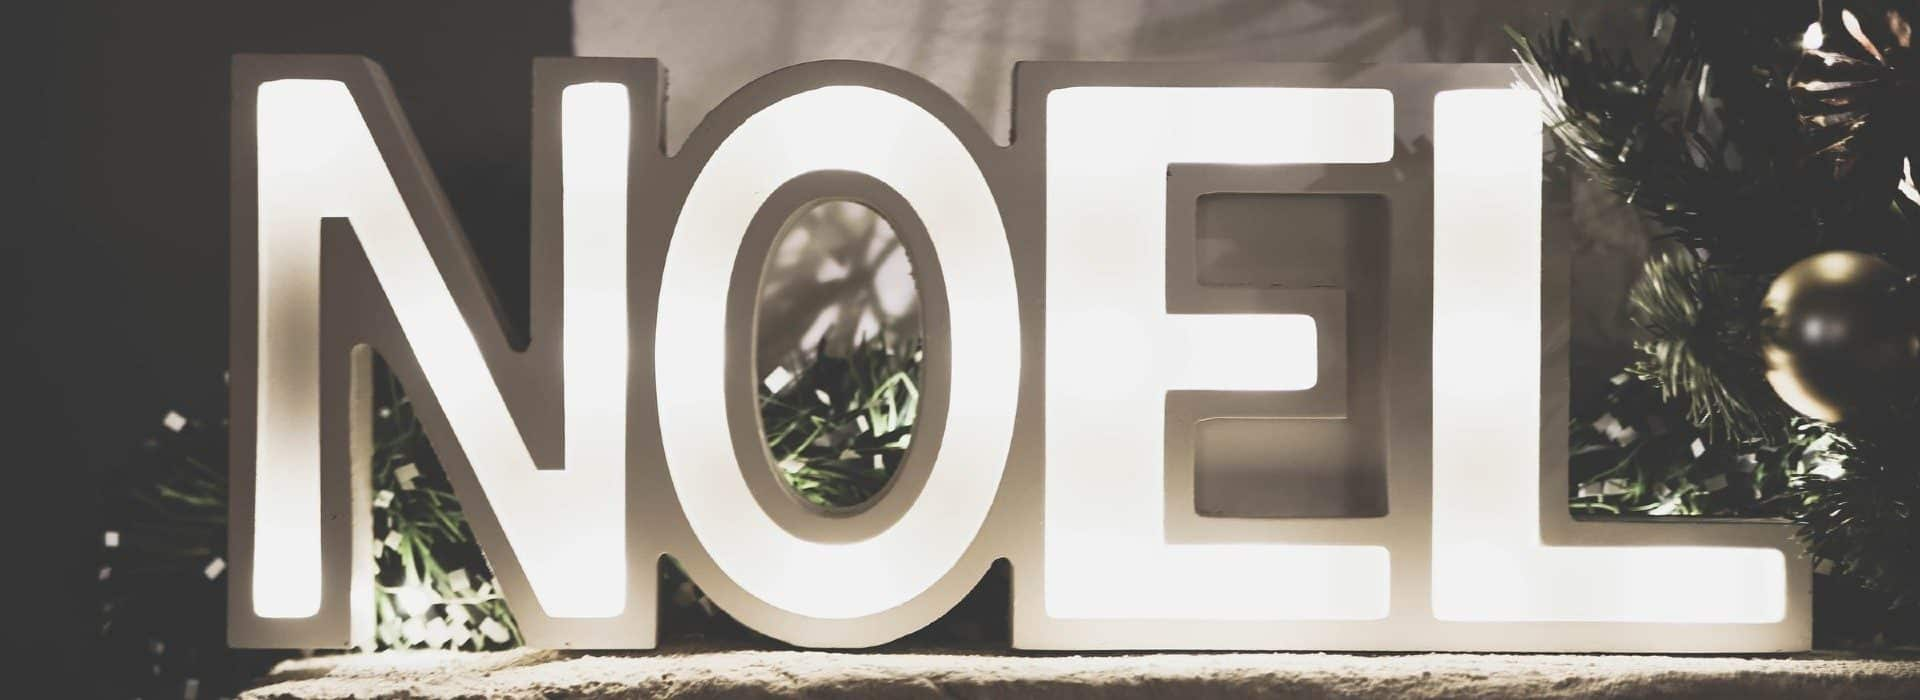 Black and white tone with the letters noel lit up with christmas tree branches behind